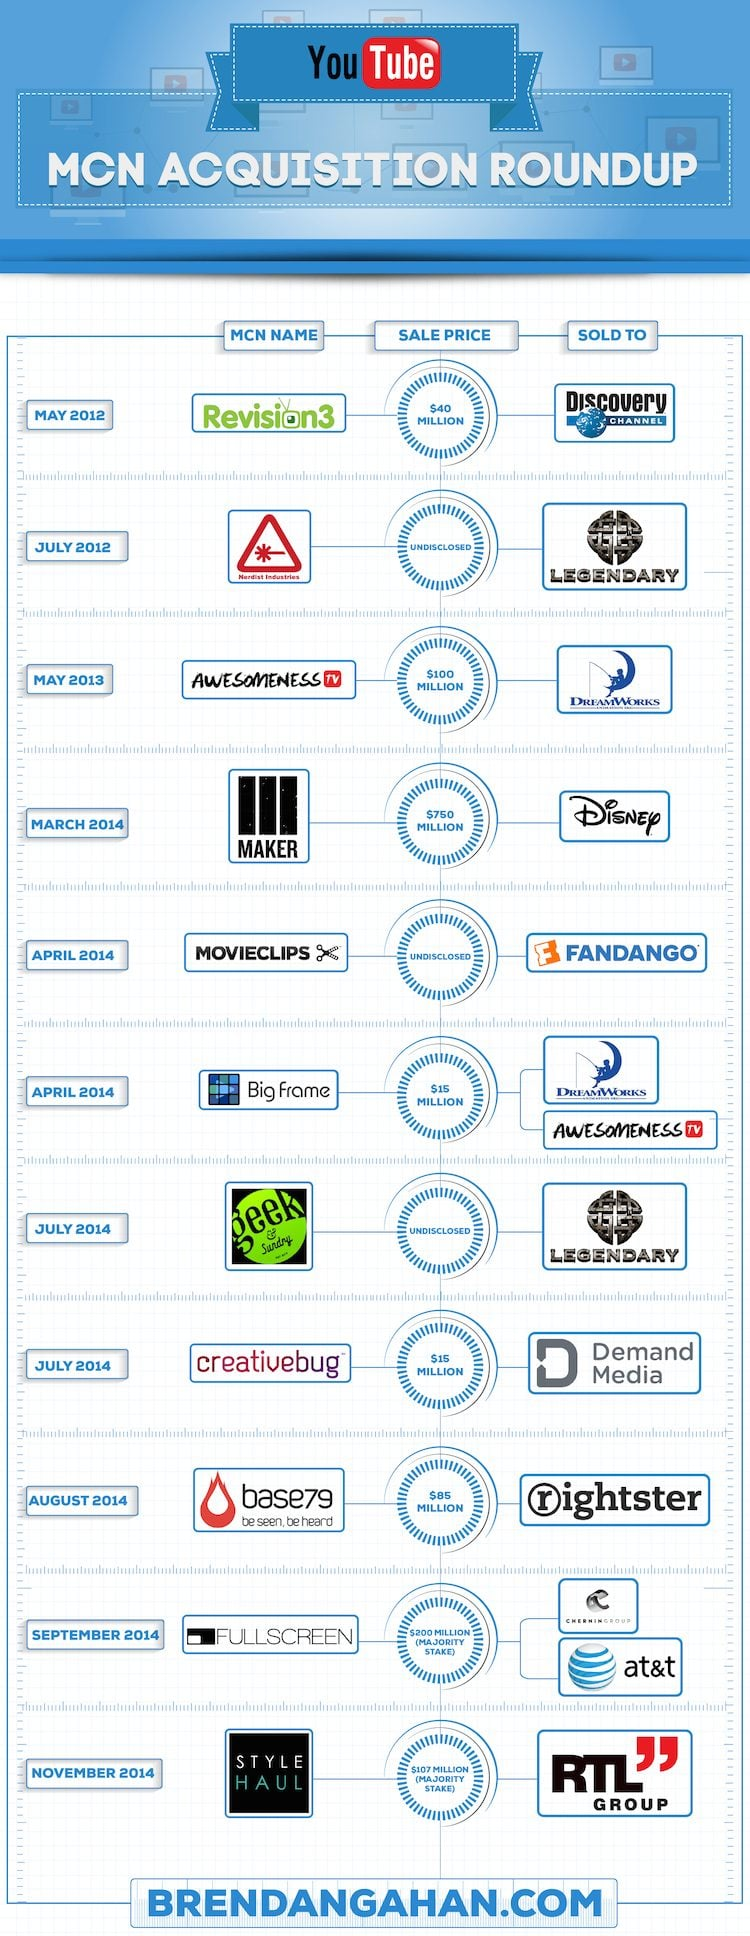 MCN Acquisition Roundup [Infographic]